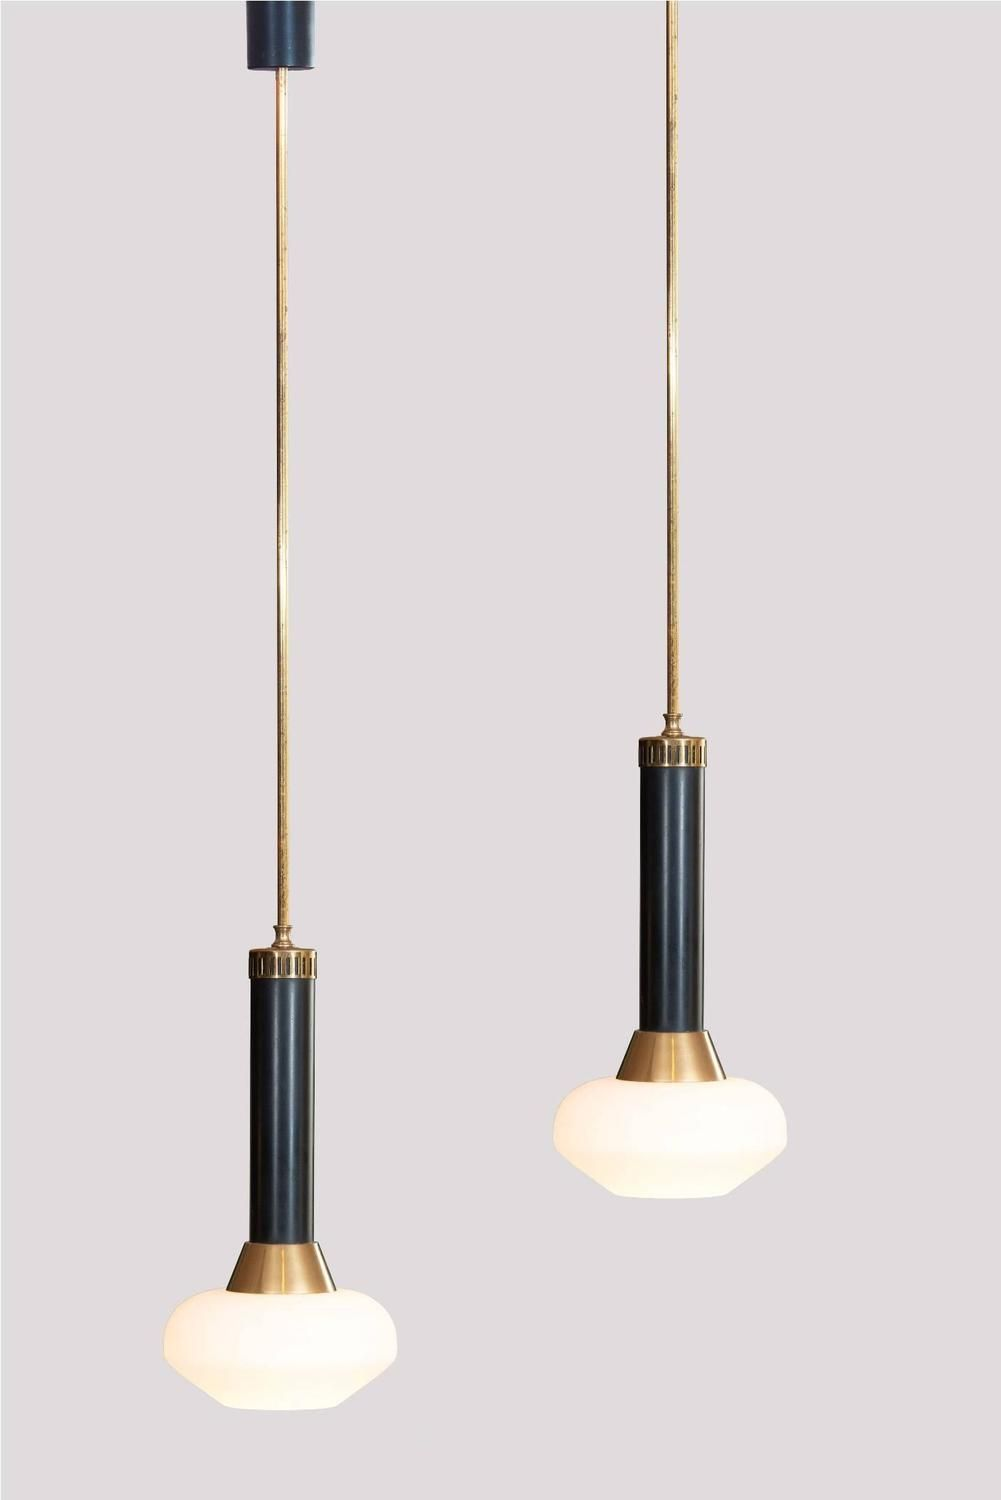 Pair of Stilnovo Pendants image 2  Light  Pinterest  조명 및 인테리어